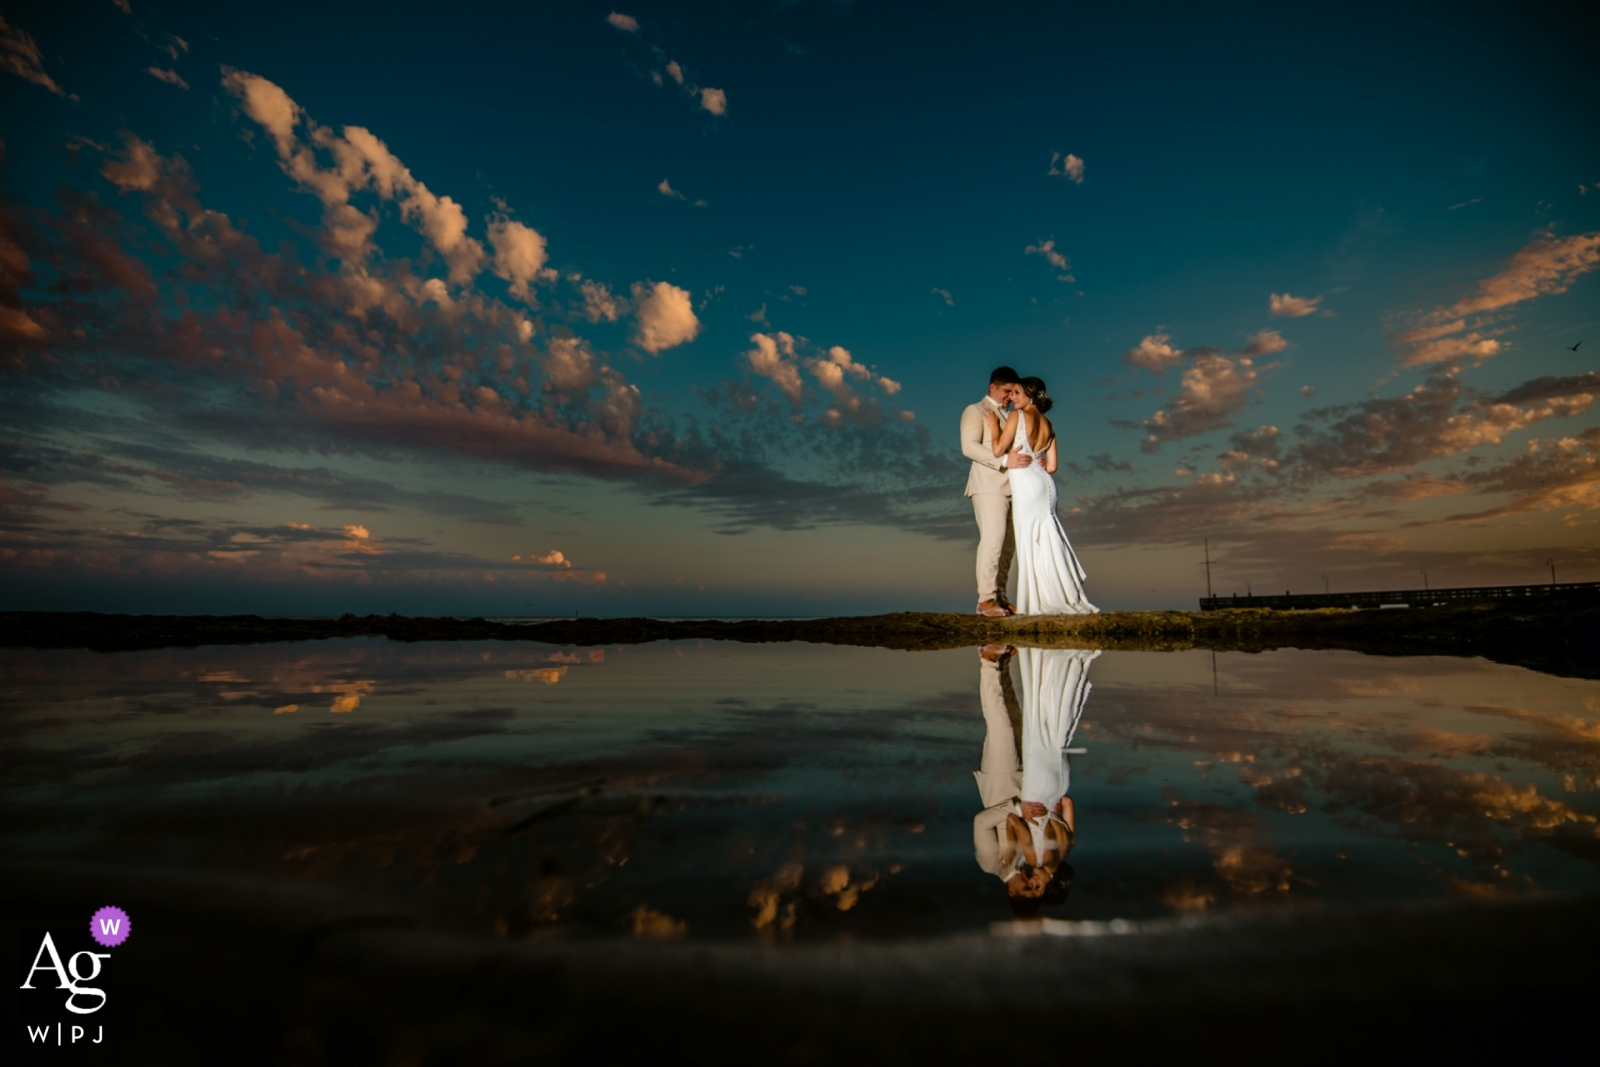 Casa Marina Resort Key West wedding photographer:Sunsets in Key West are something special. When its low tide the limestone rocks expose themselves, which gives you perfect tide pools for reflections.